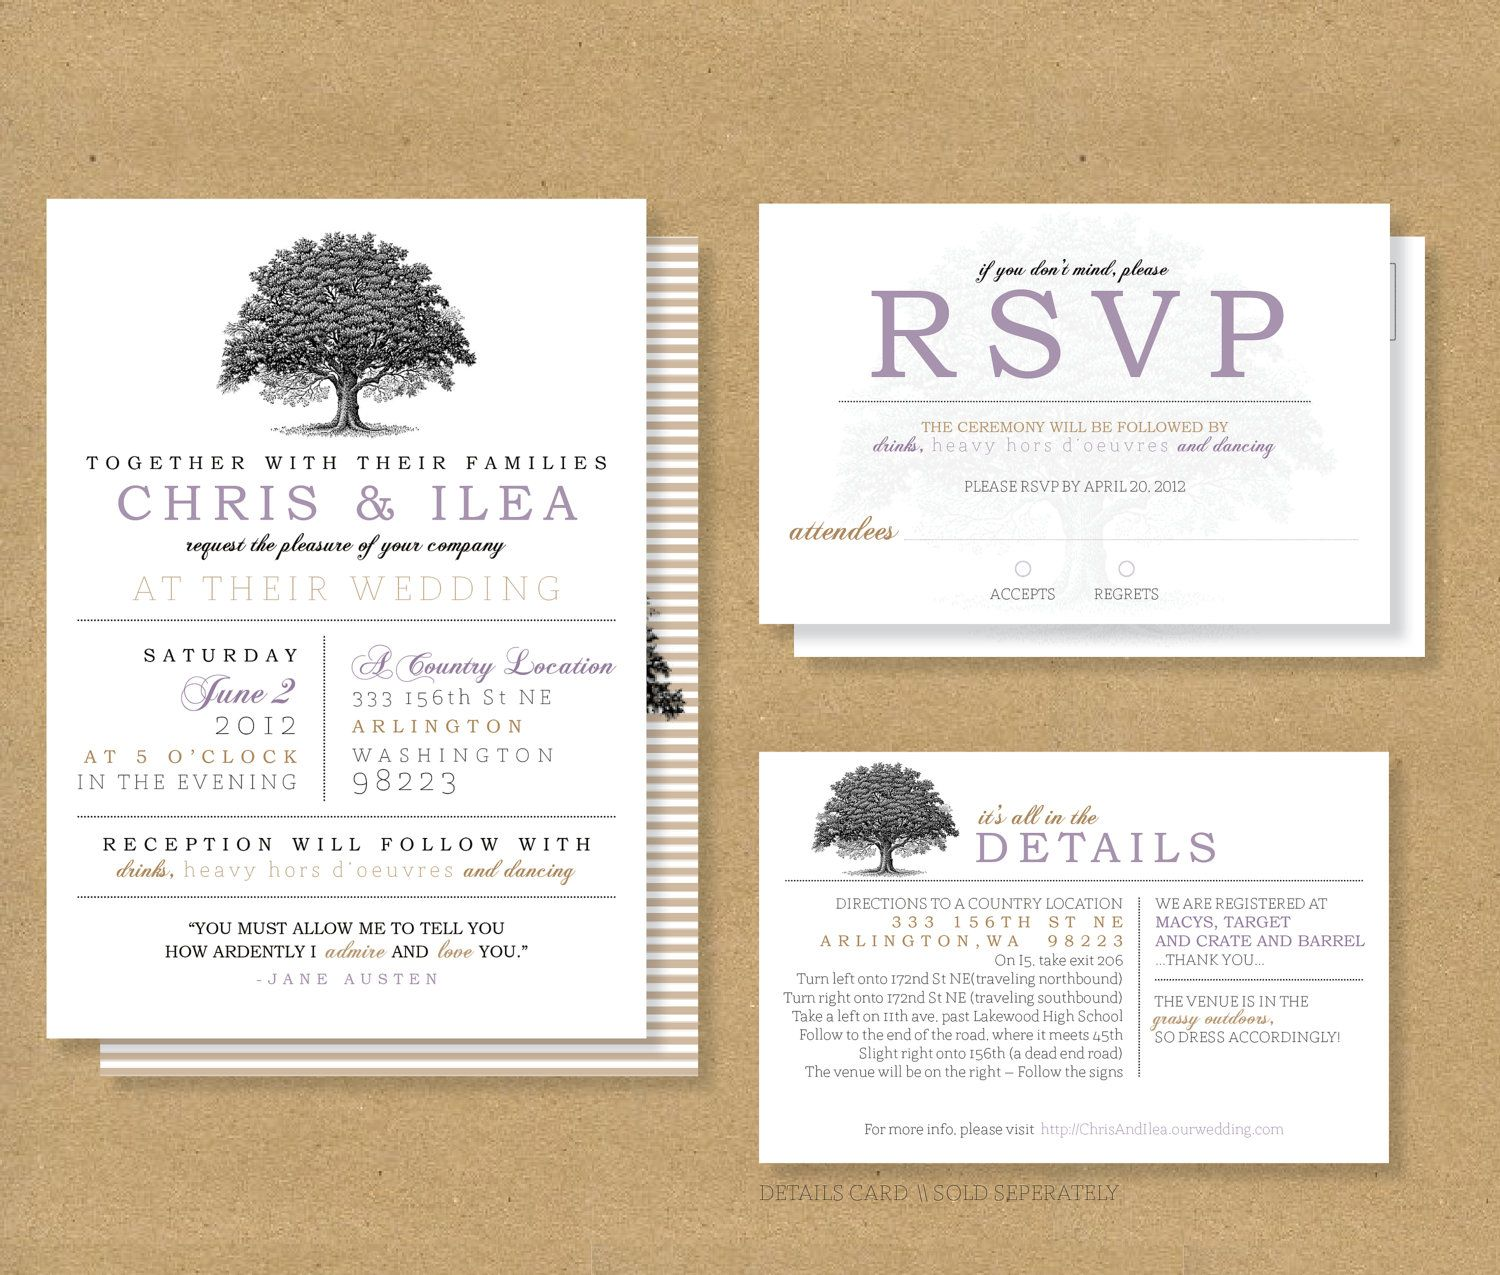 Wedding invitationwedding rsvp wording samples tips for How to send wedding invitations with rsvp